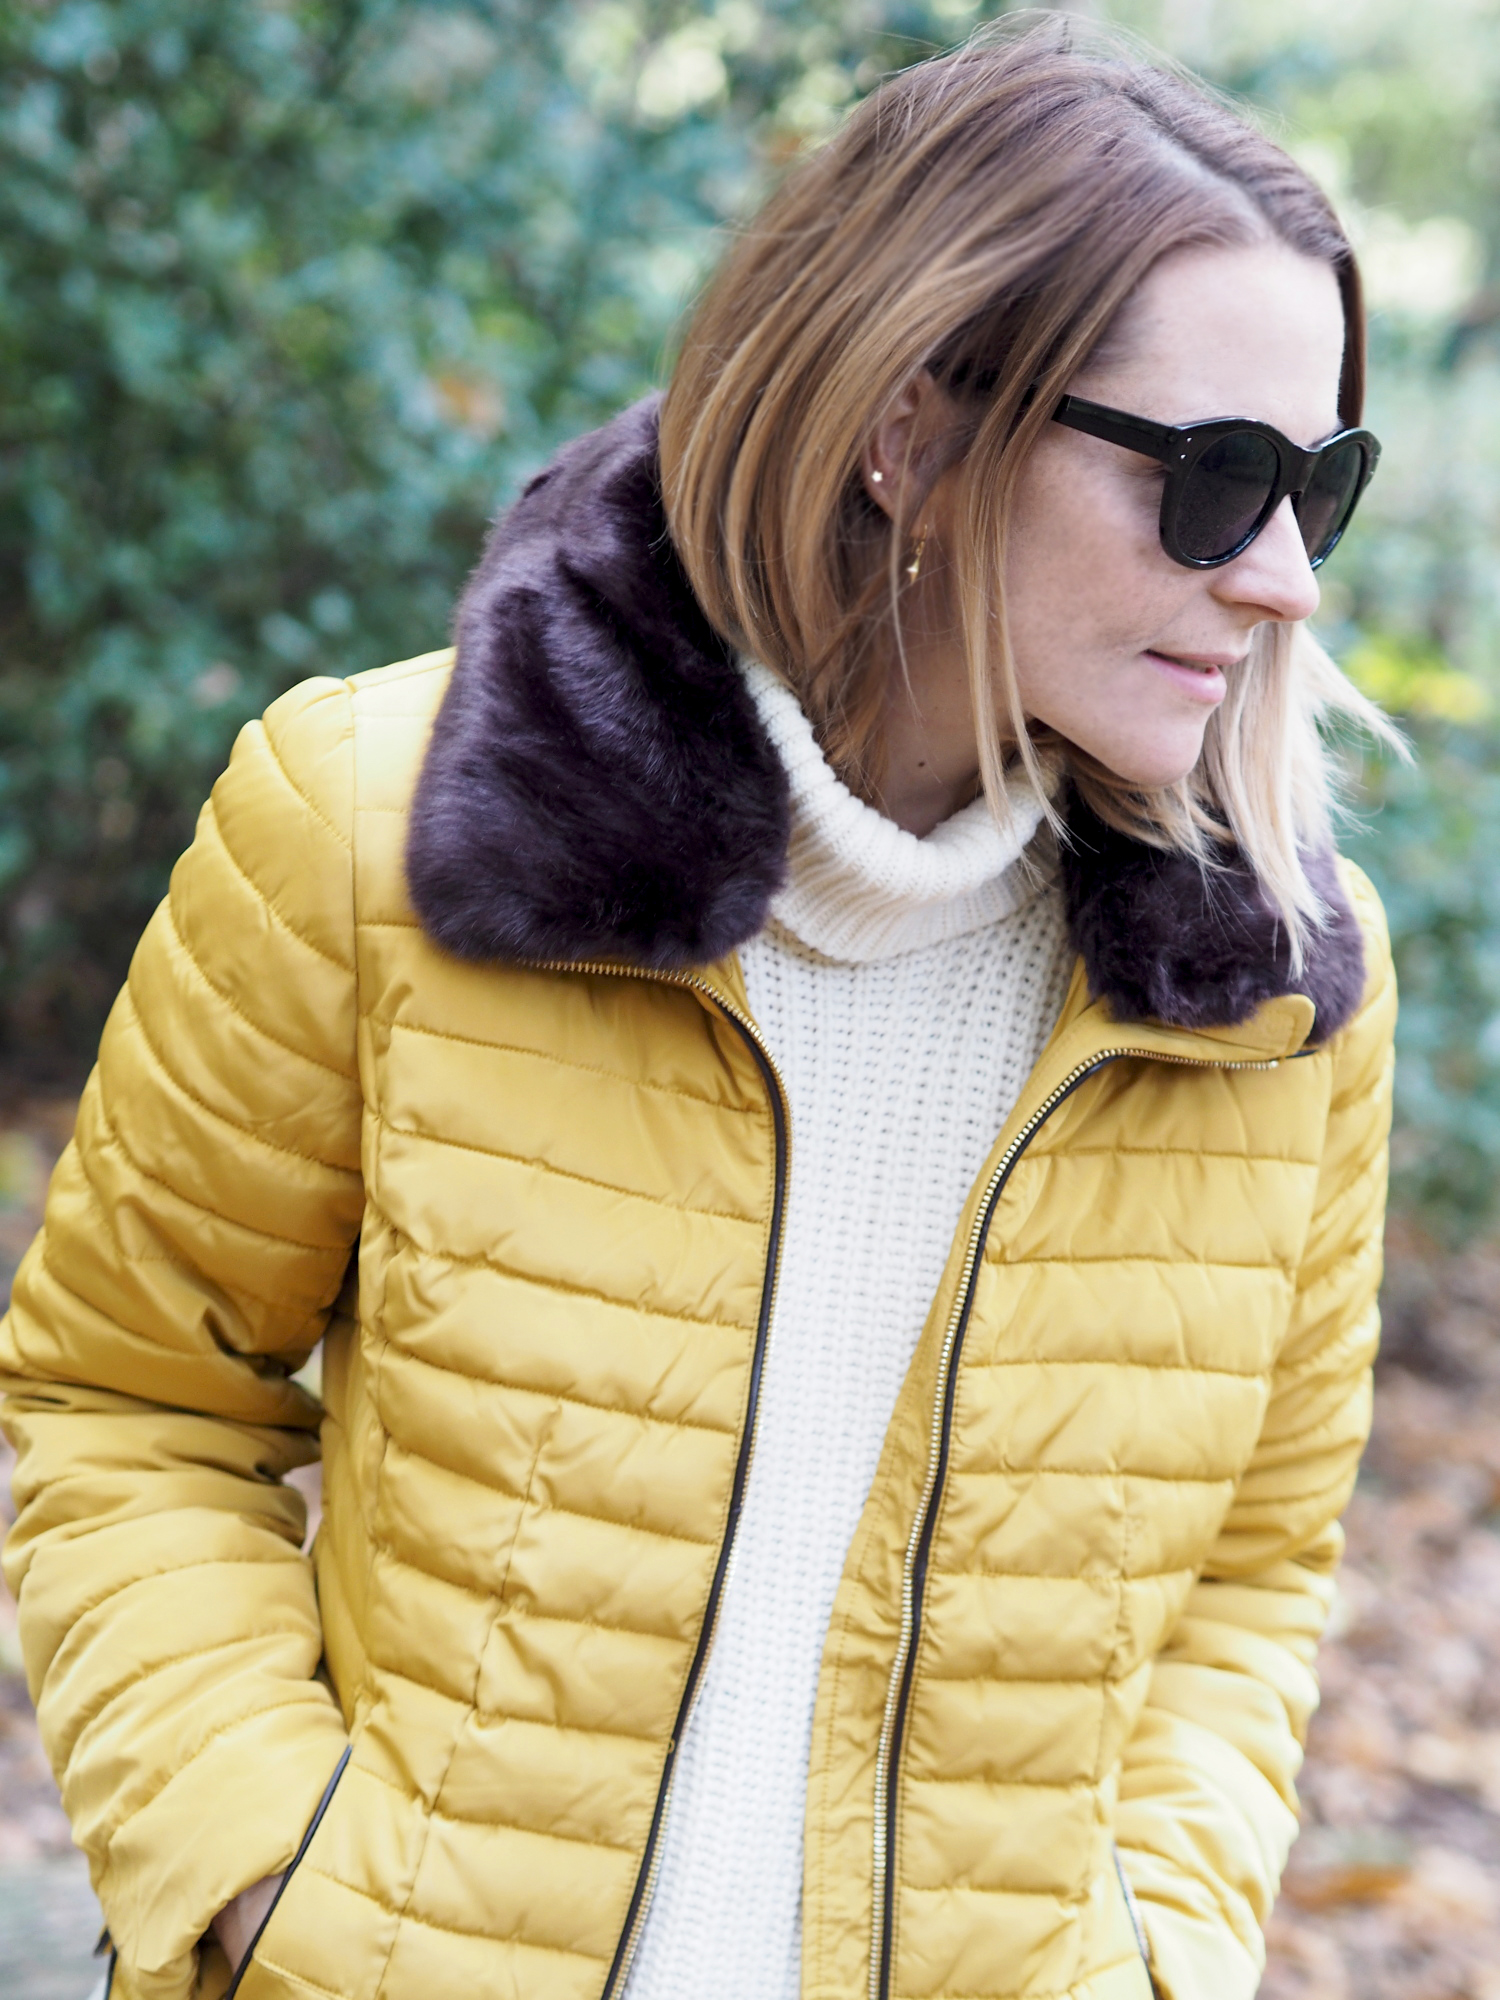 joules mustard padded coat and wellies